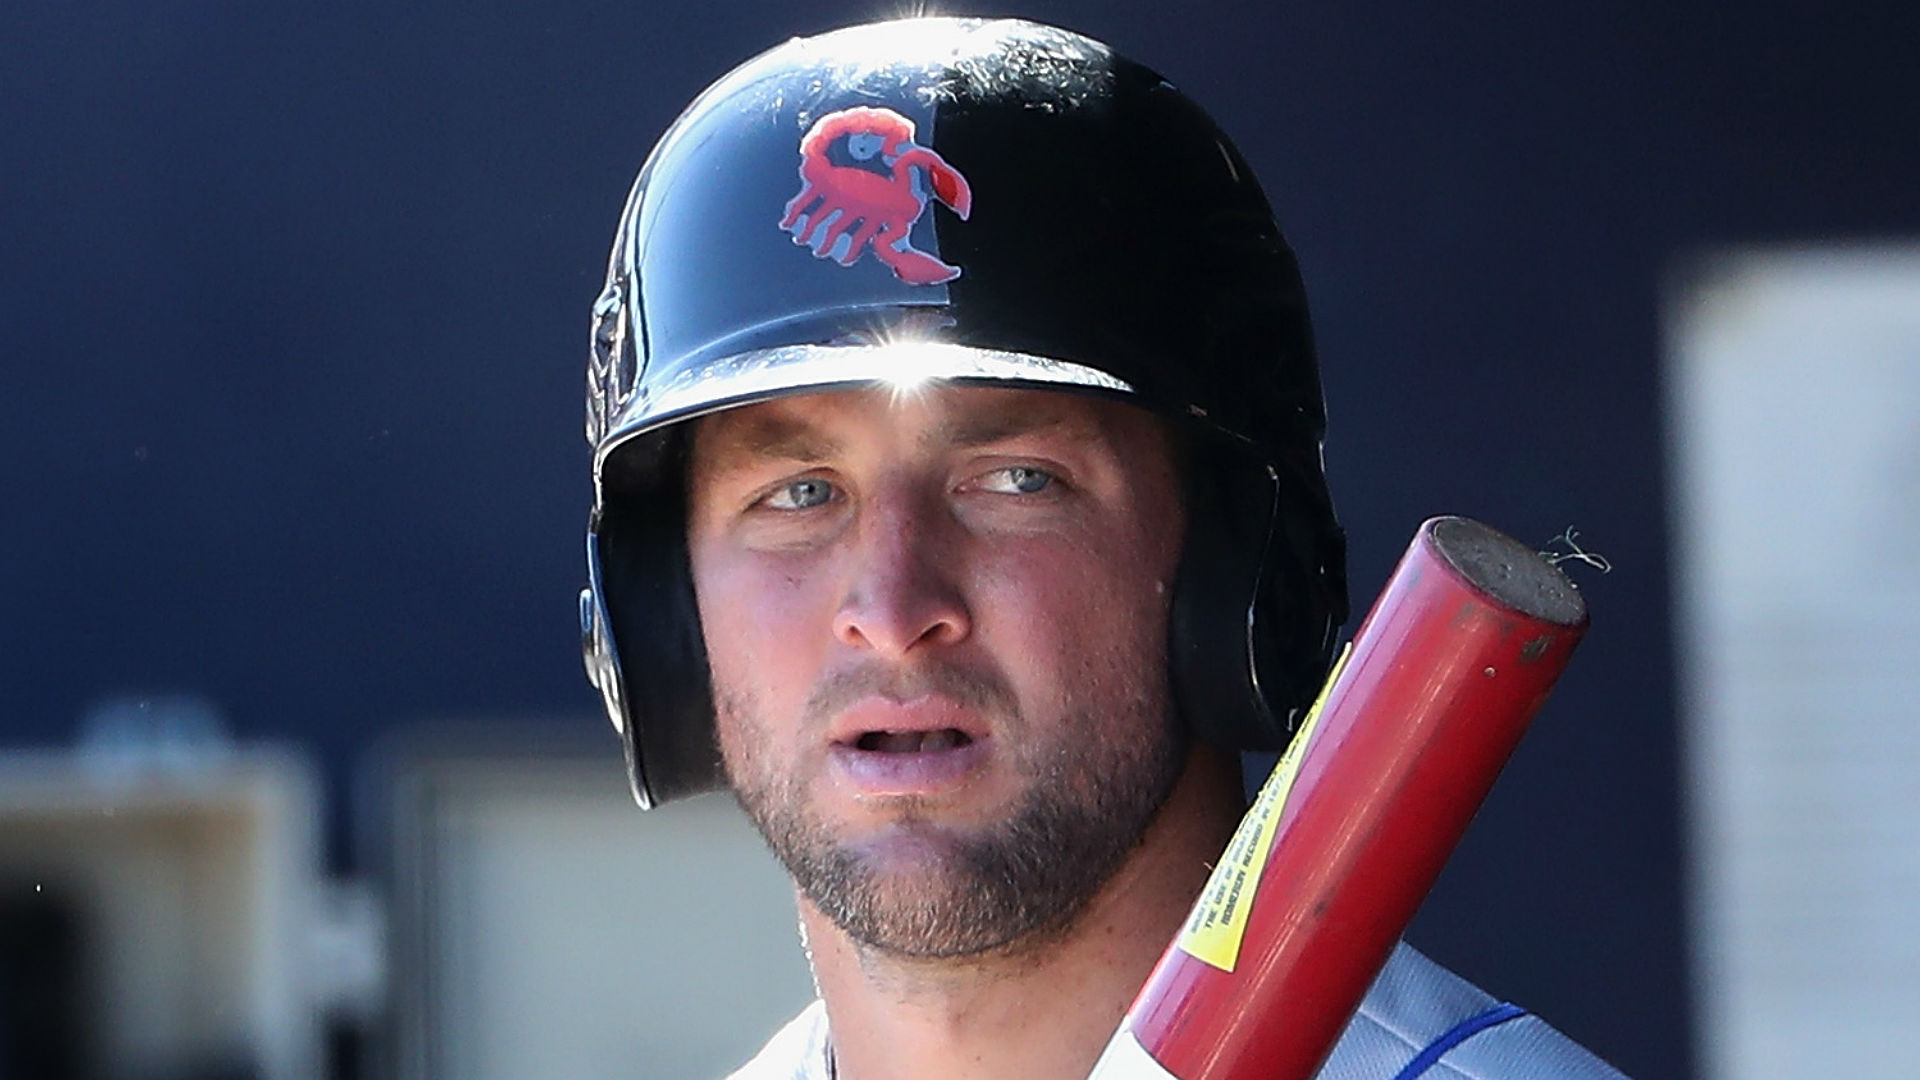 Watch Tim Tebow get hit in head by pitch